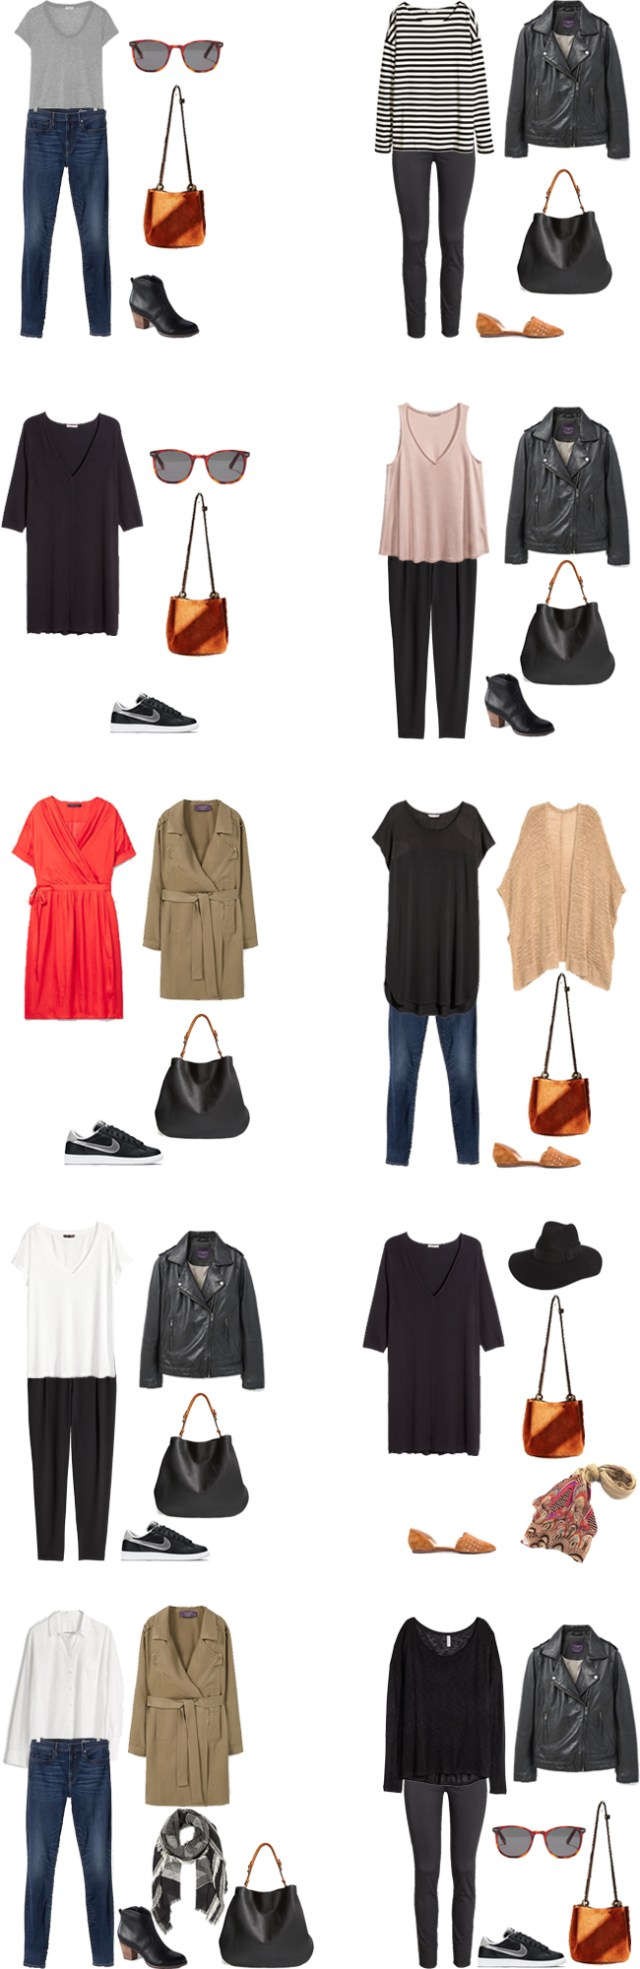 What to Wear in Italy Outfit Options 21-30 #travellight #travel #packinglight #traveltips